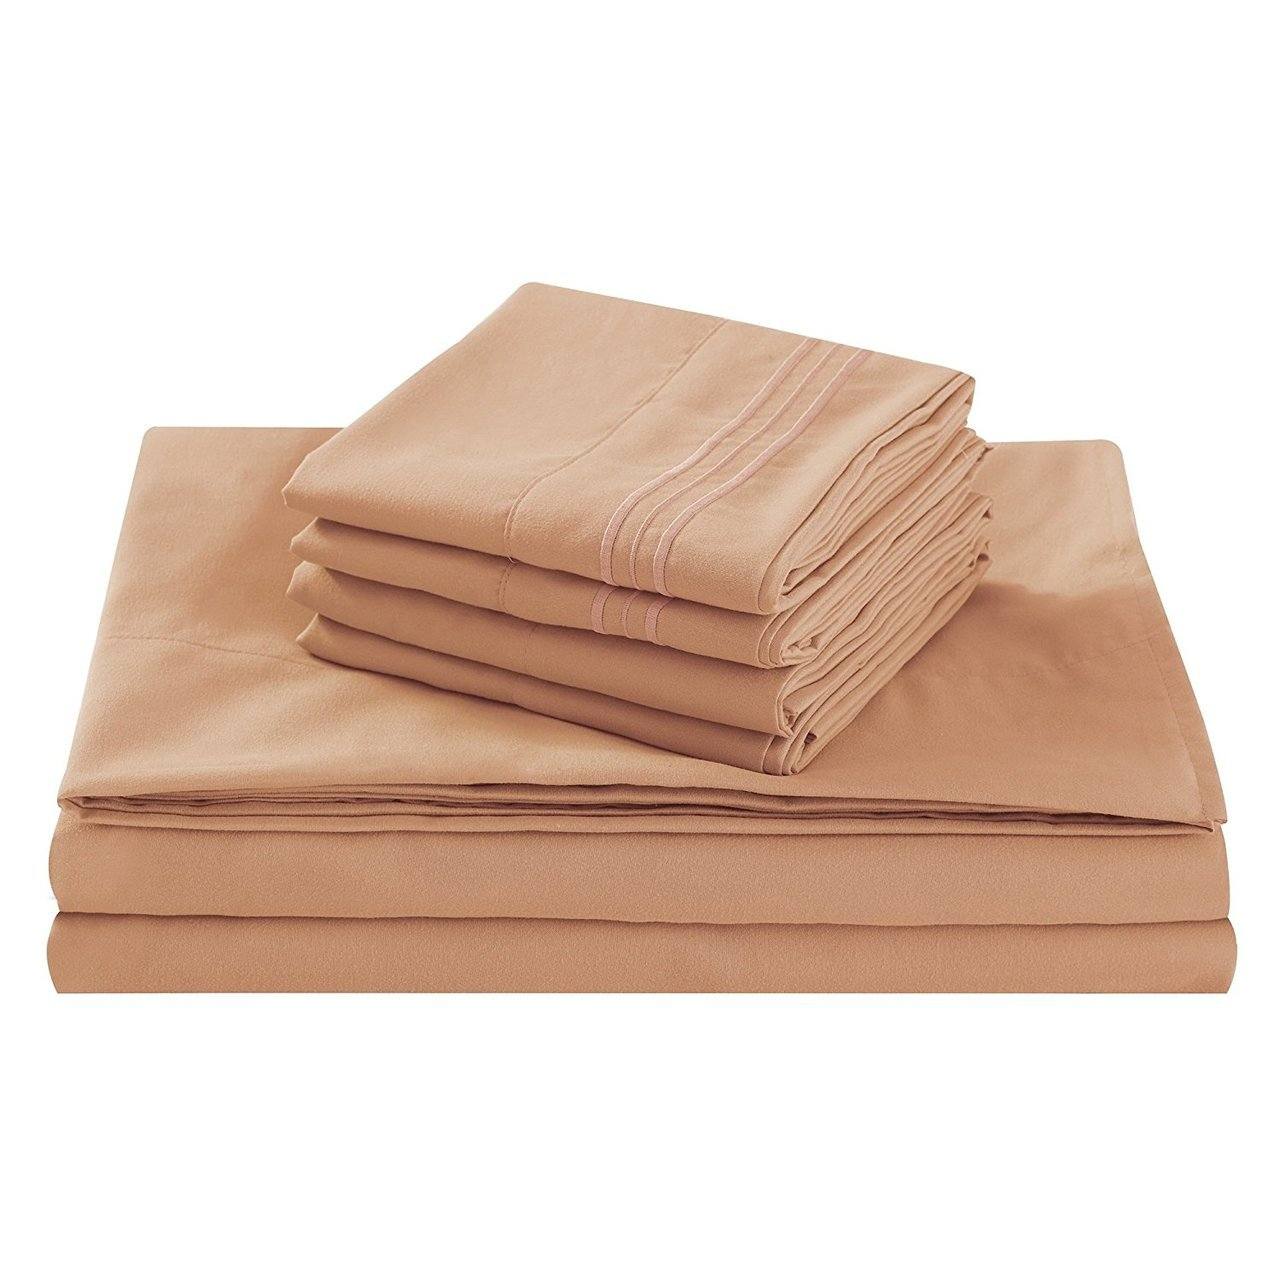 King Size Bed Sheet Set Fifth Avenue Home 39camel 39 California King Size Bed Sheet